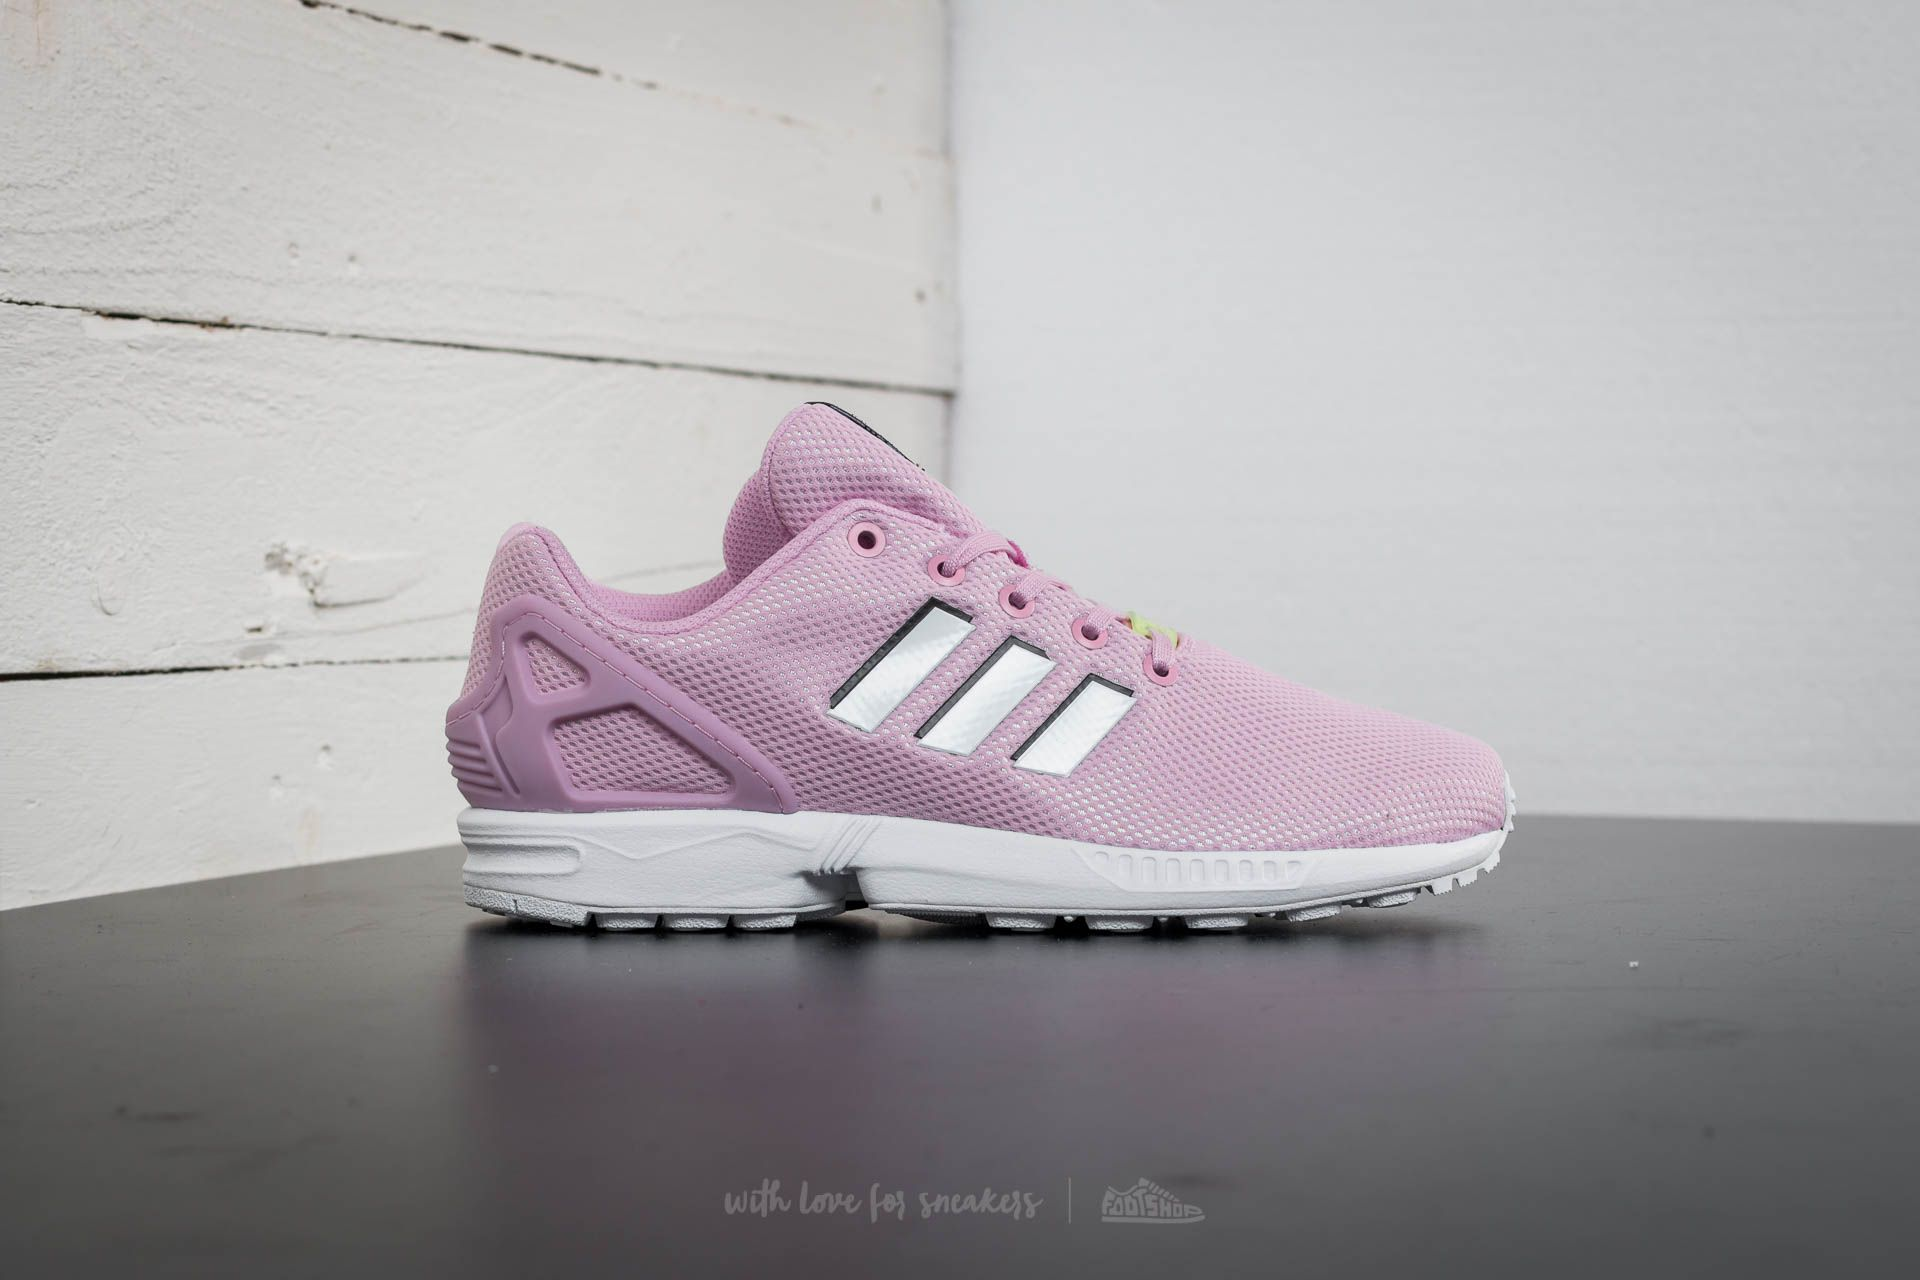 bbcfab806 ... australia adidas zx flux j frost pink ftw white ftw white at a great  price a2953